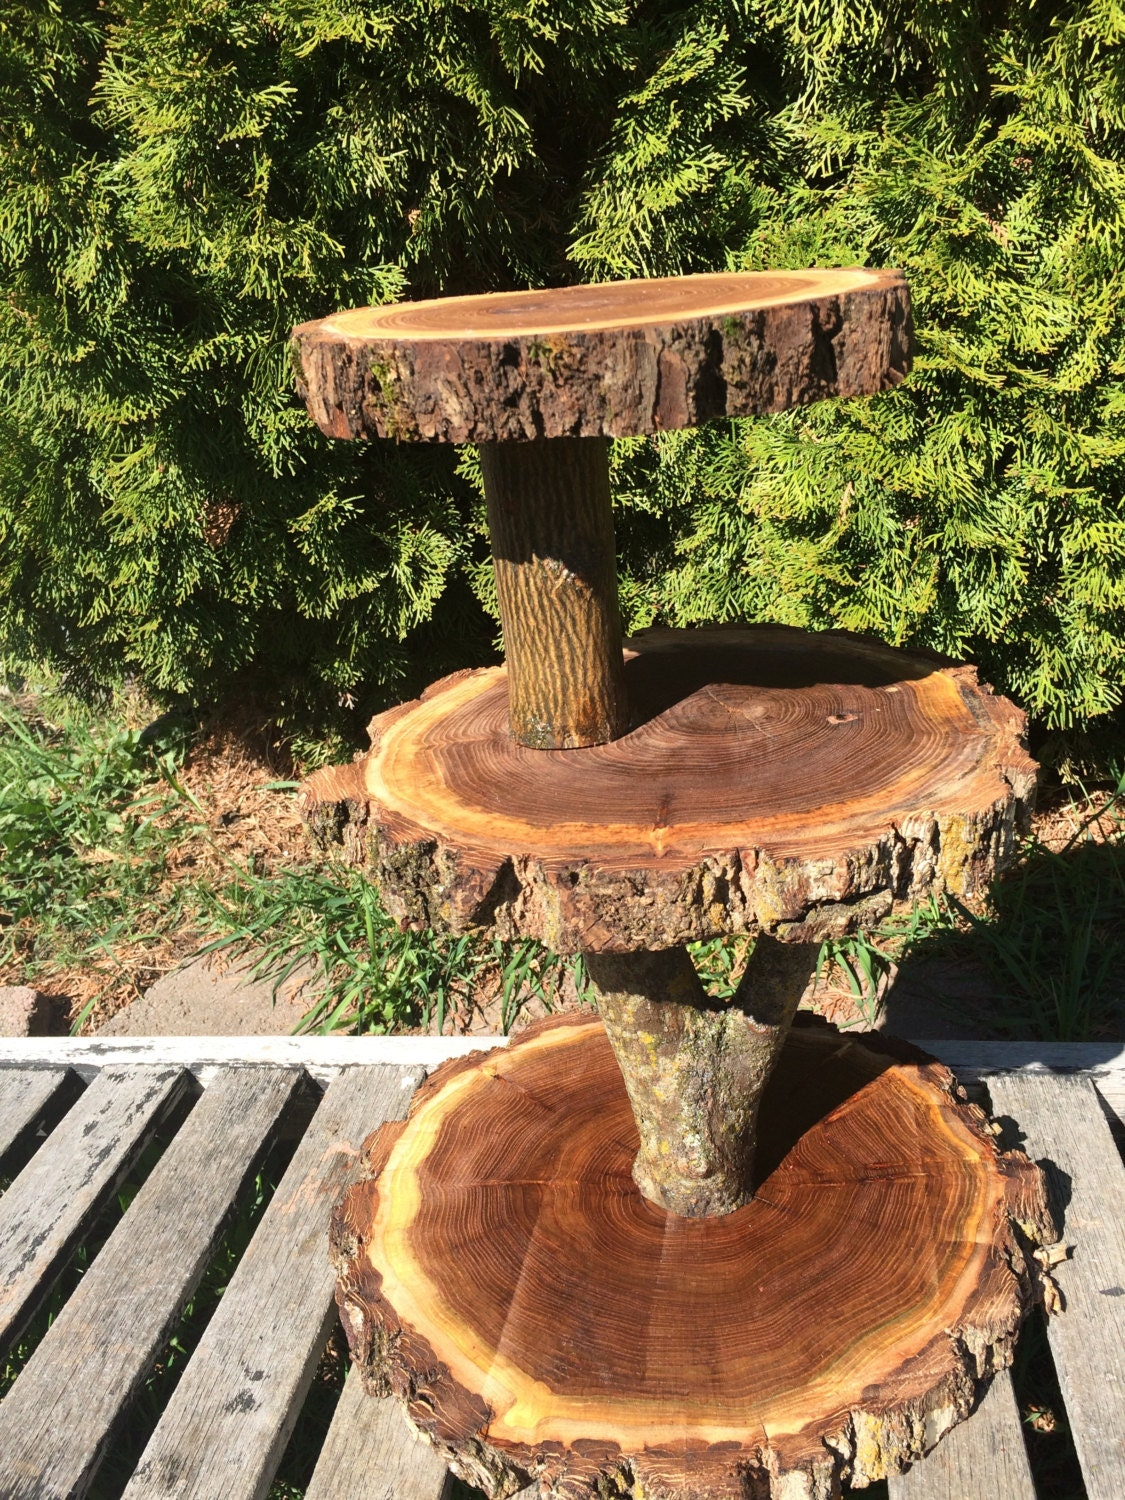 Sensational Large Log Elm Wood Rustic Cake Cupcake Stand Wedding Party Ibusinesslaw Wood Chair Design Ideas Ibusinesslaworg